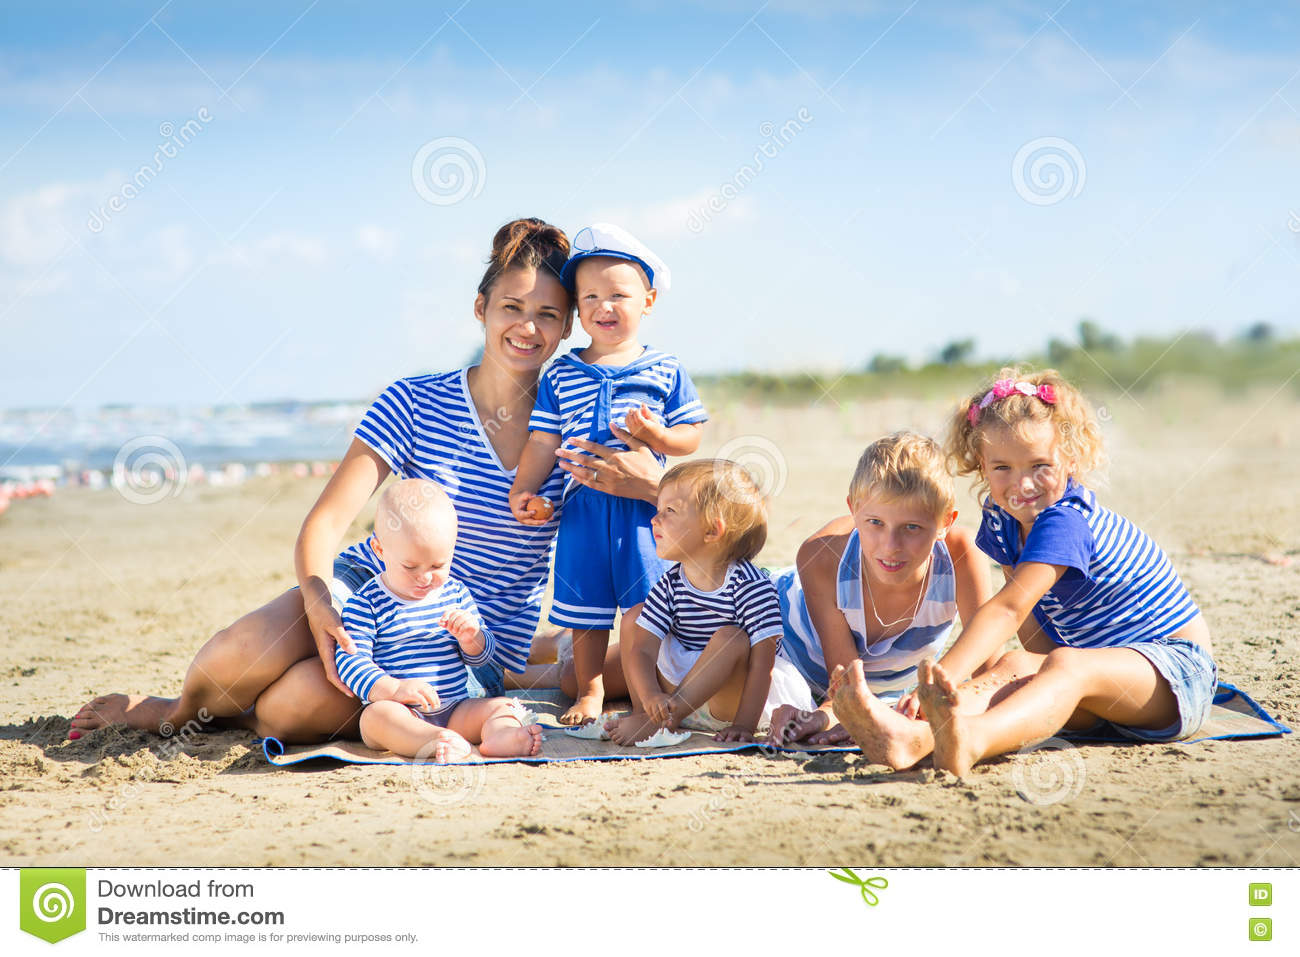 My mother with five children